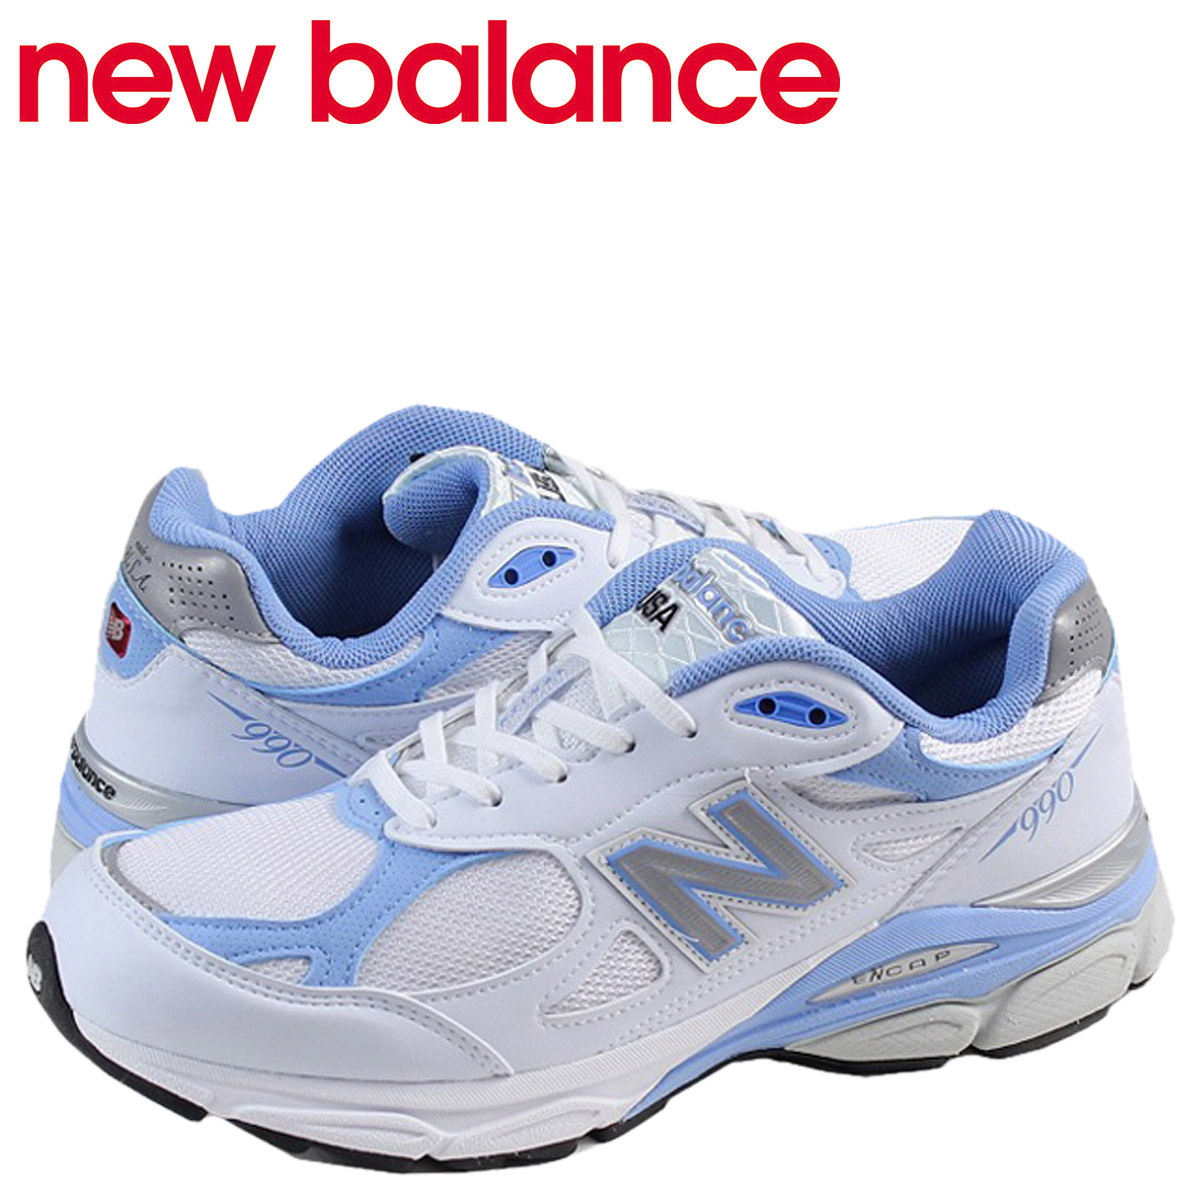 Shop Online Sneakers New Balance Lady's Sugar W990wb3 qUSw51